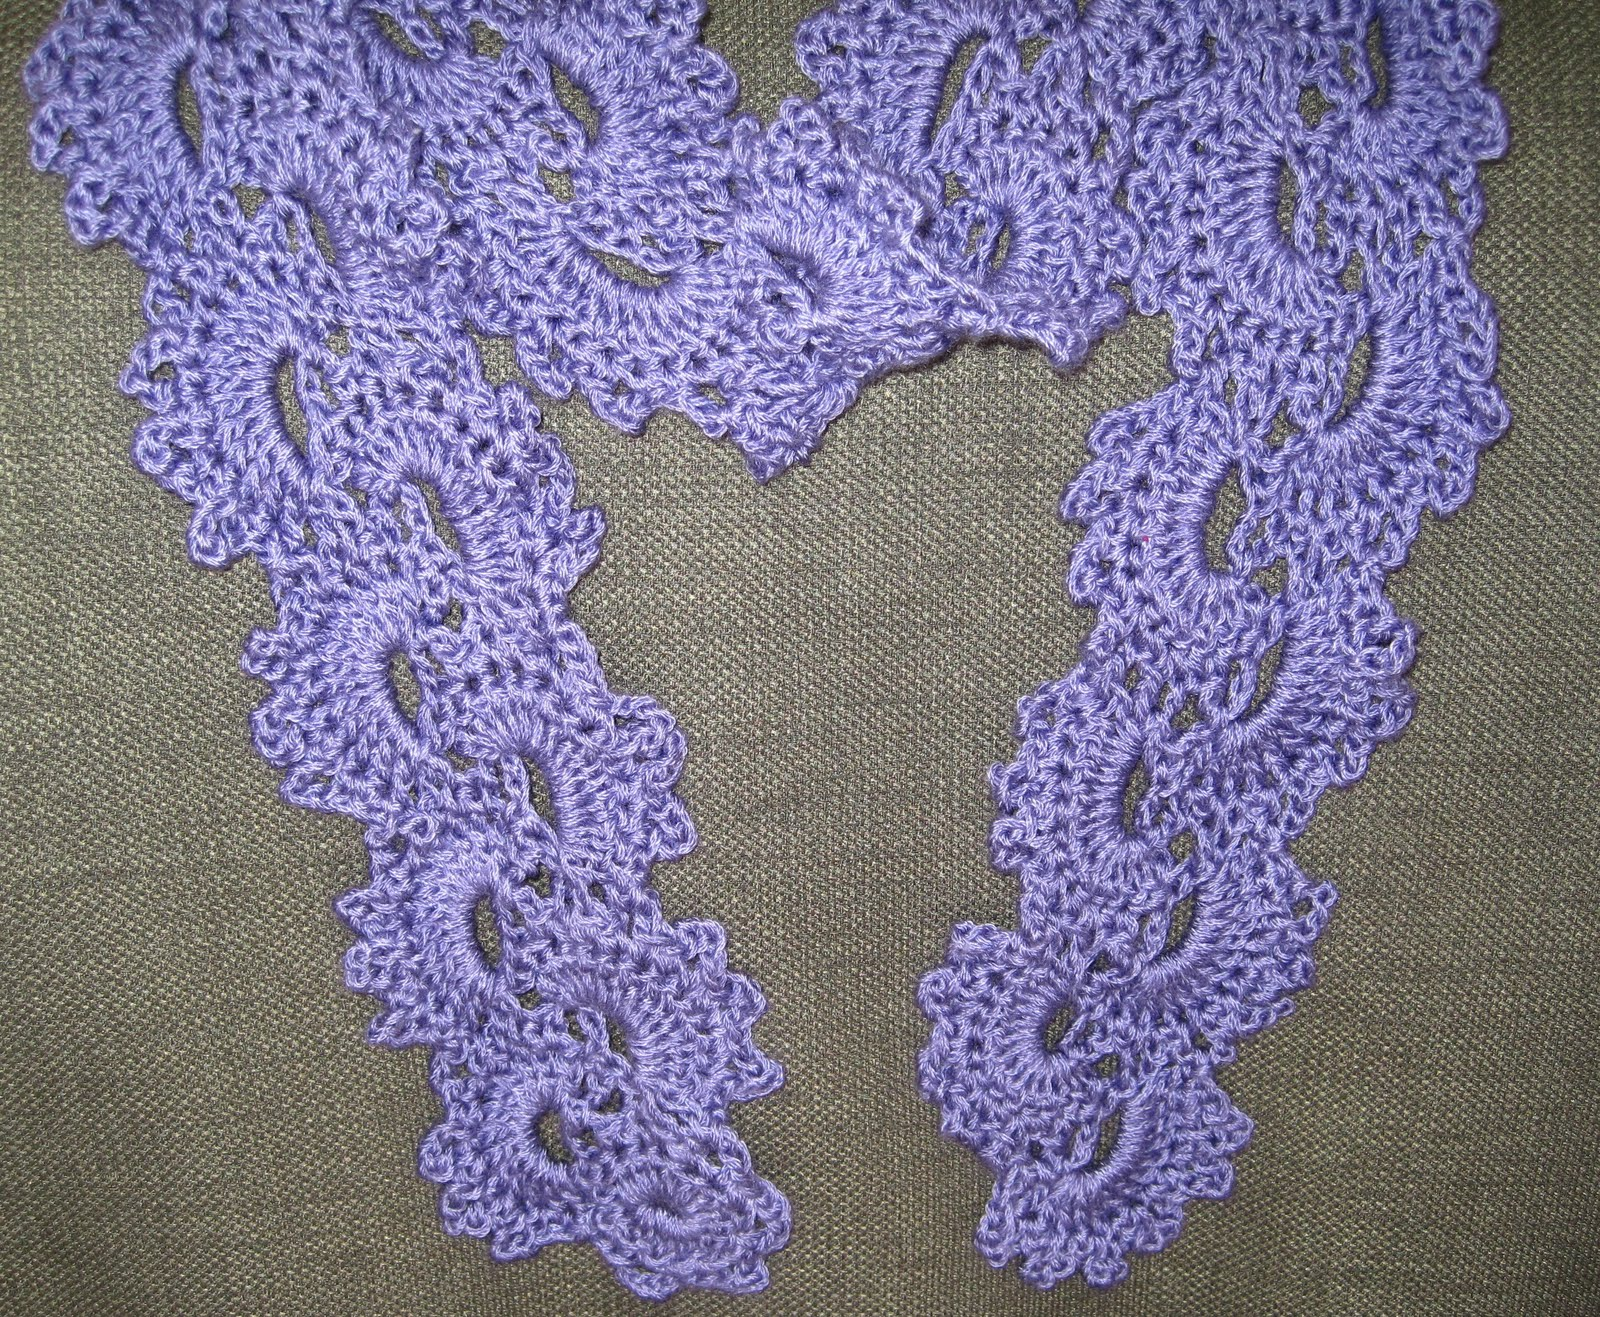 ... Queen Annes Lace Crochet Scarf Tutorial (with pattern modifications